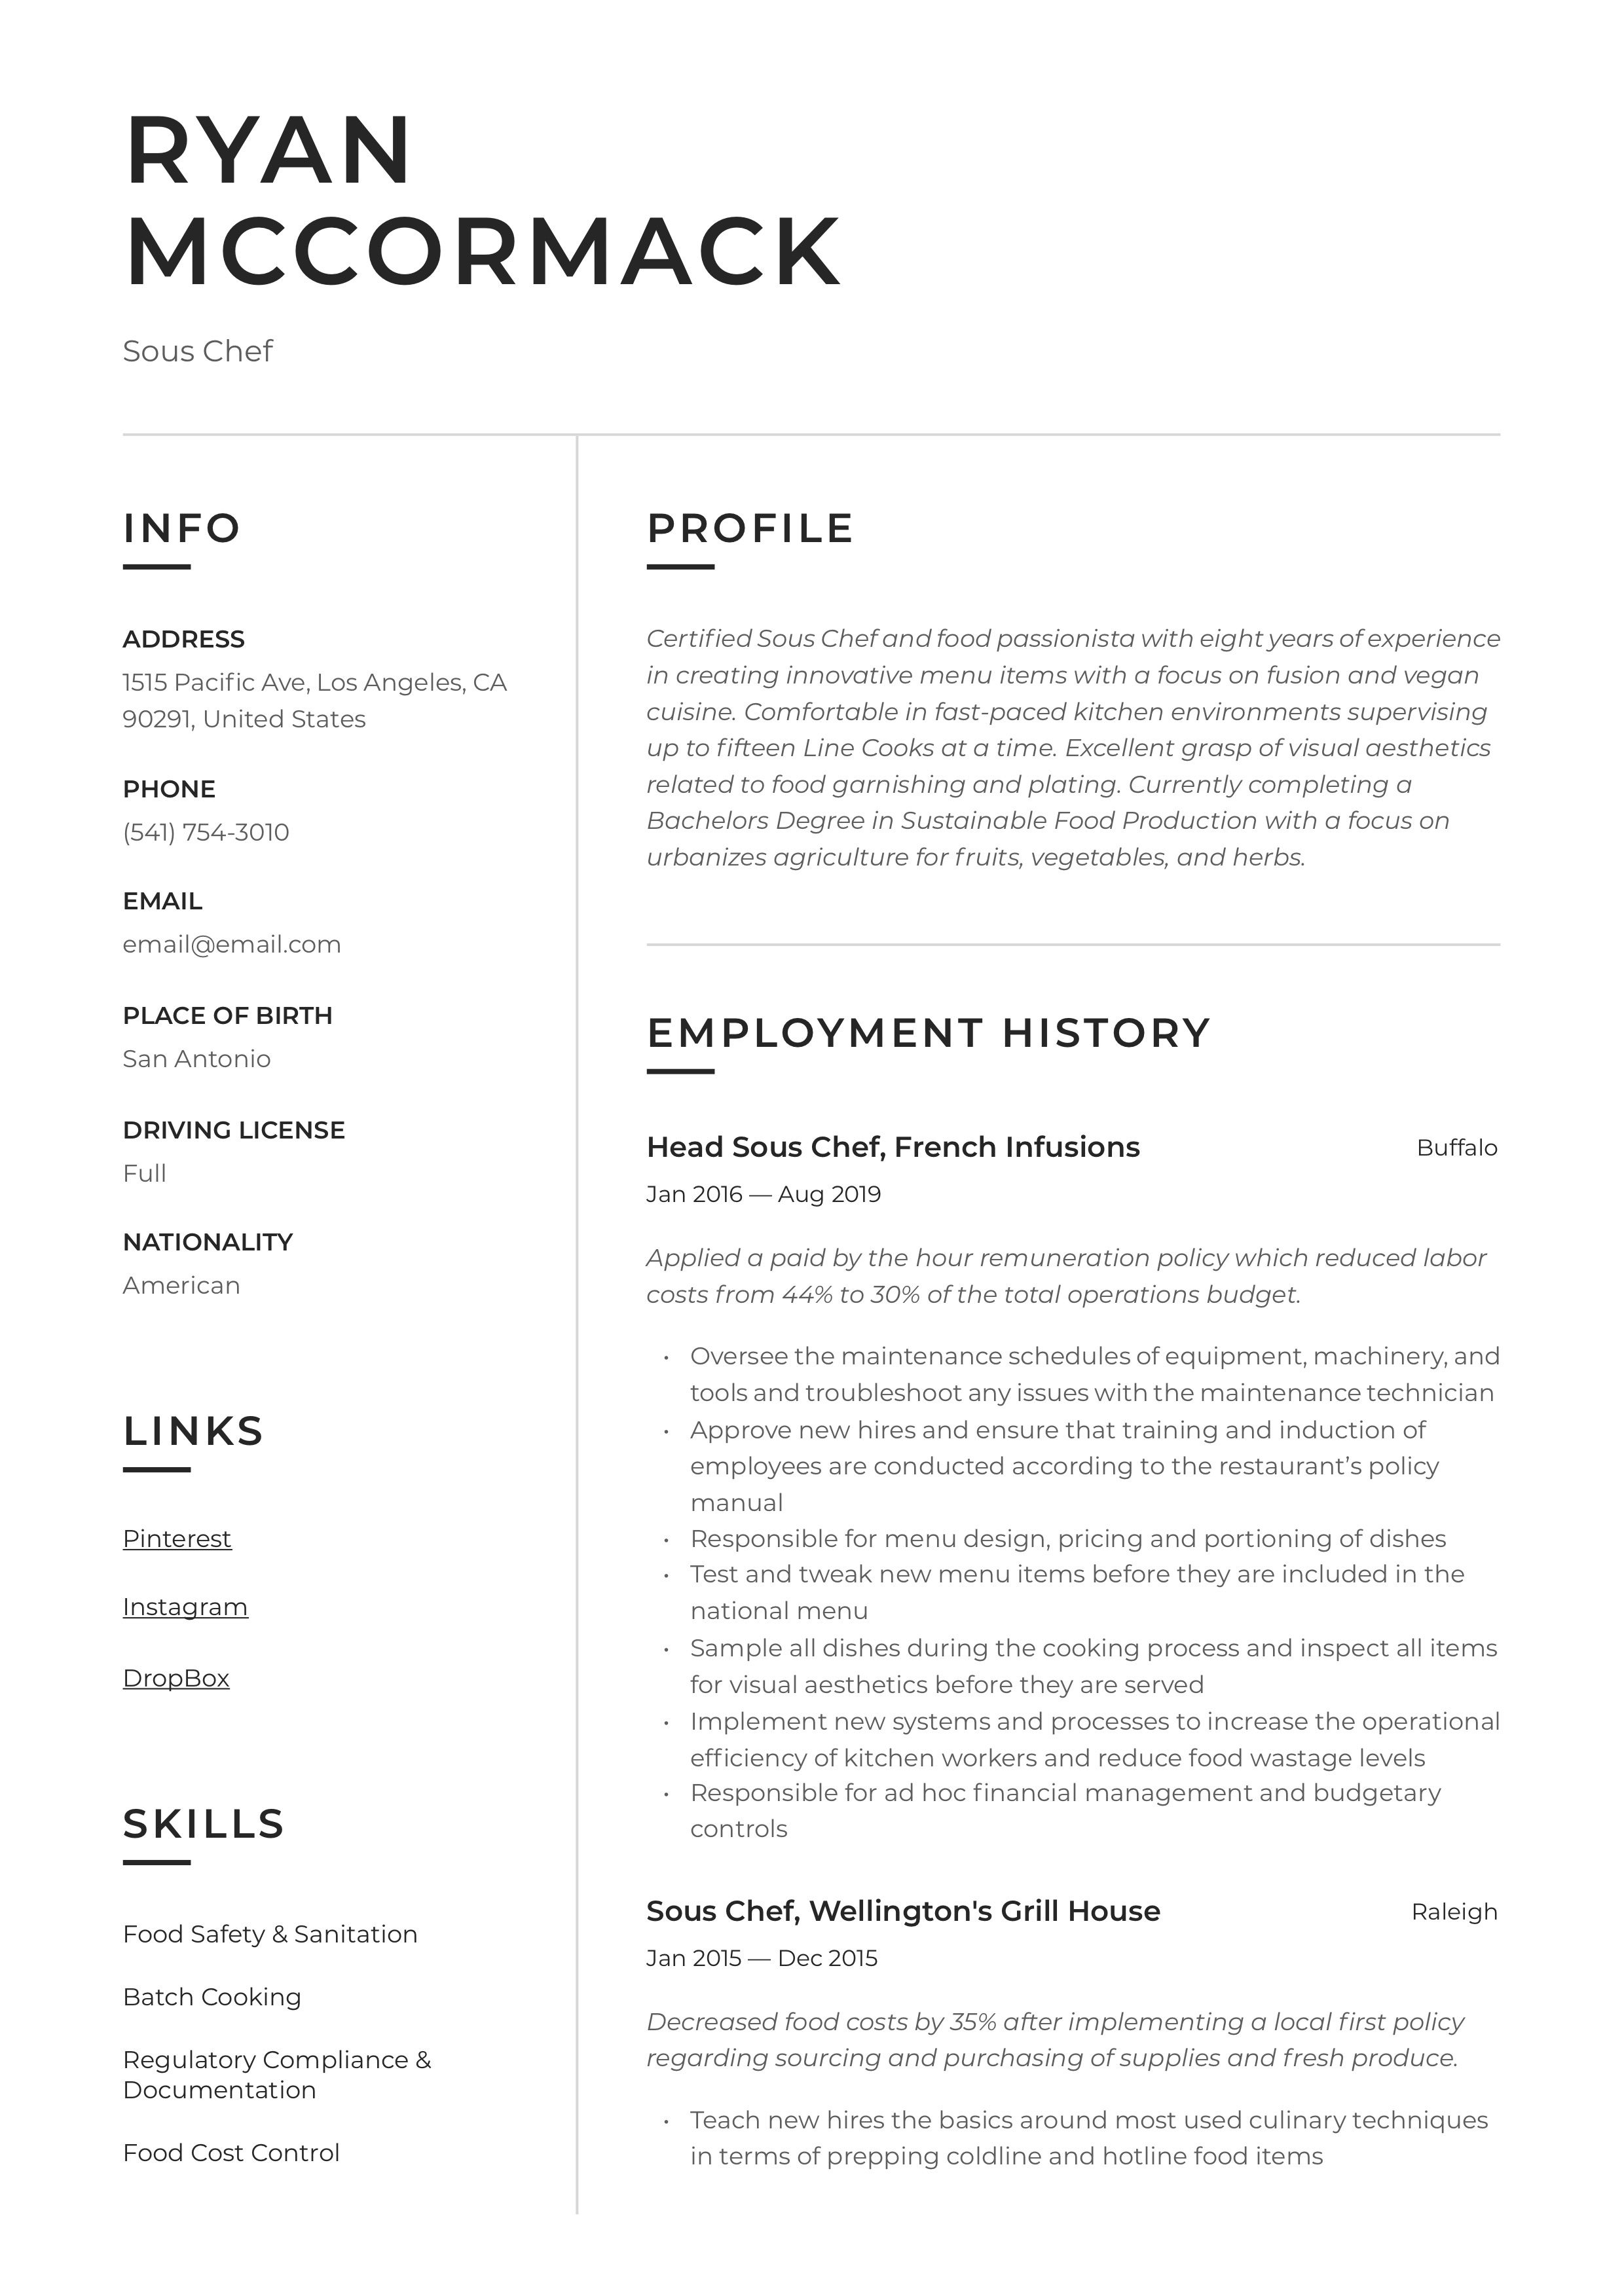 professional sous chef resume  template  design  tips